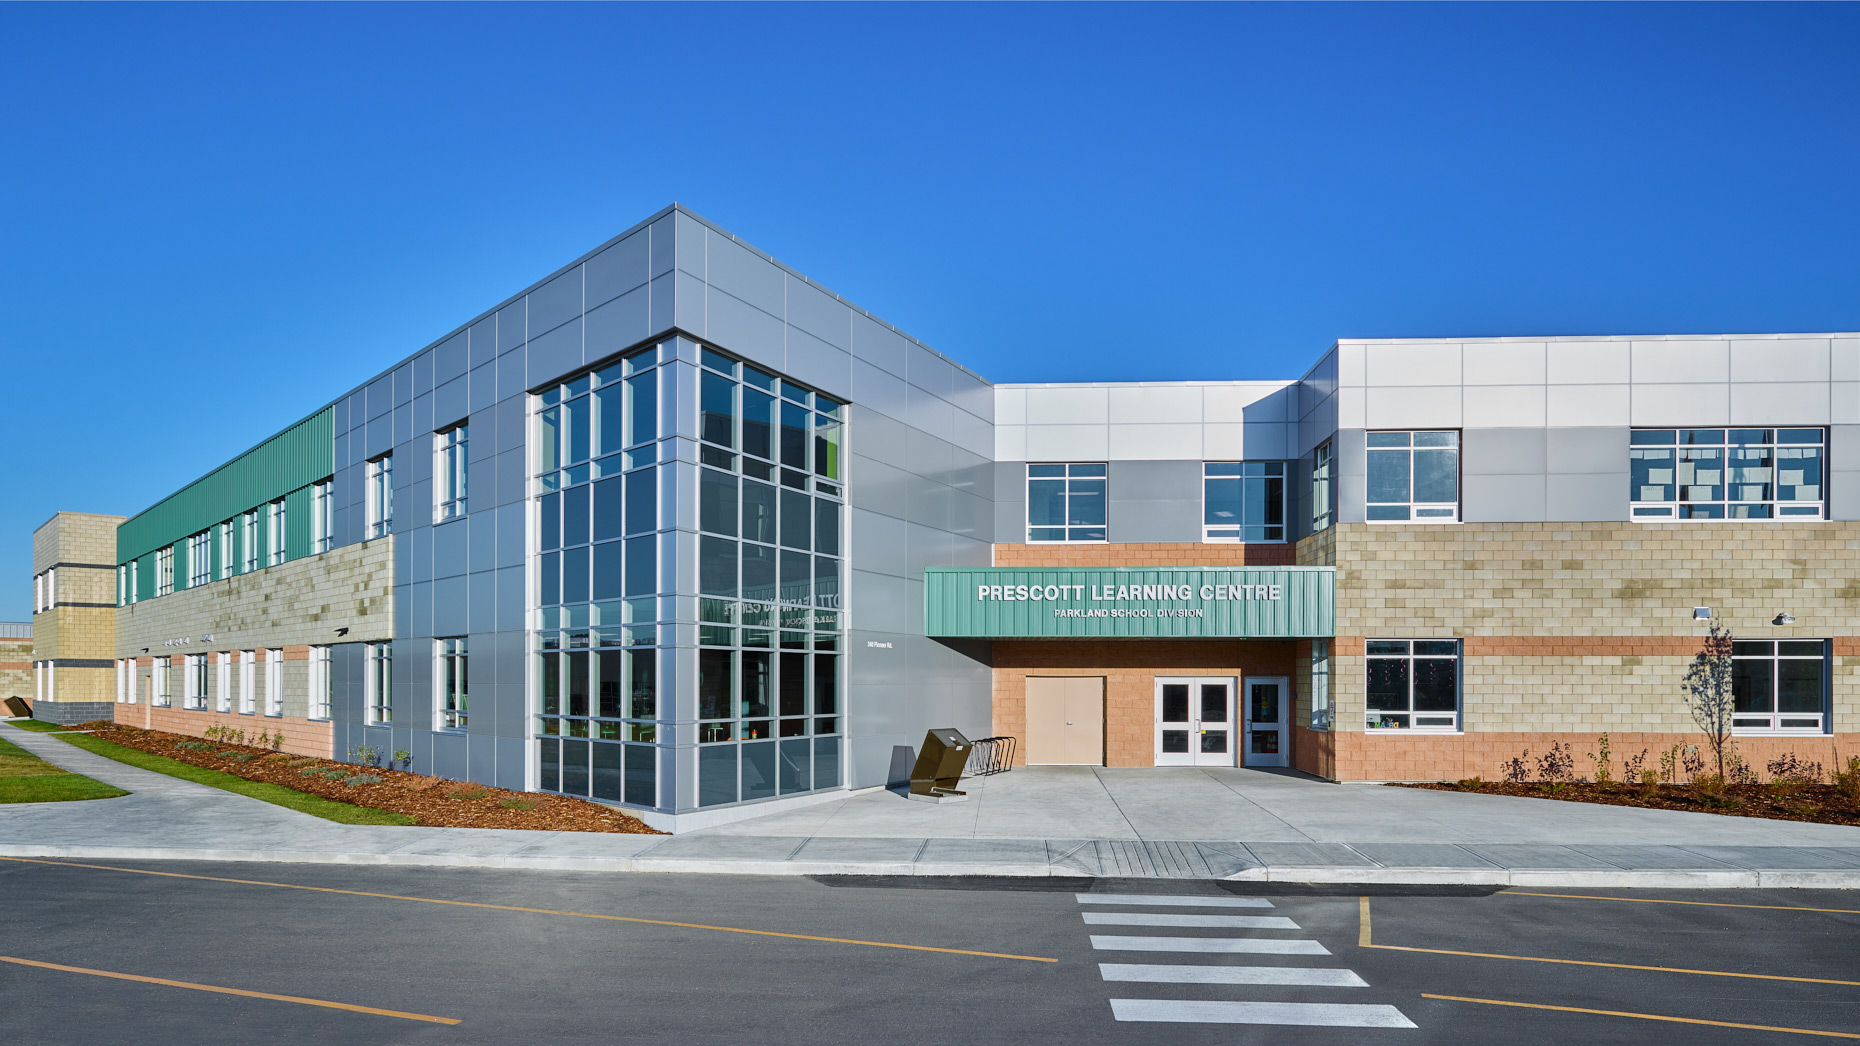 Beaverbrook_Prescott-Learning-Centre-1